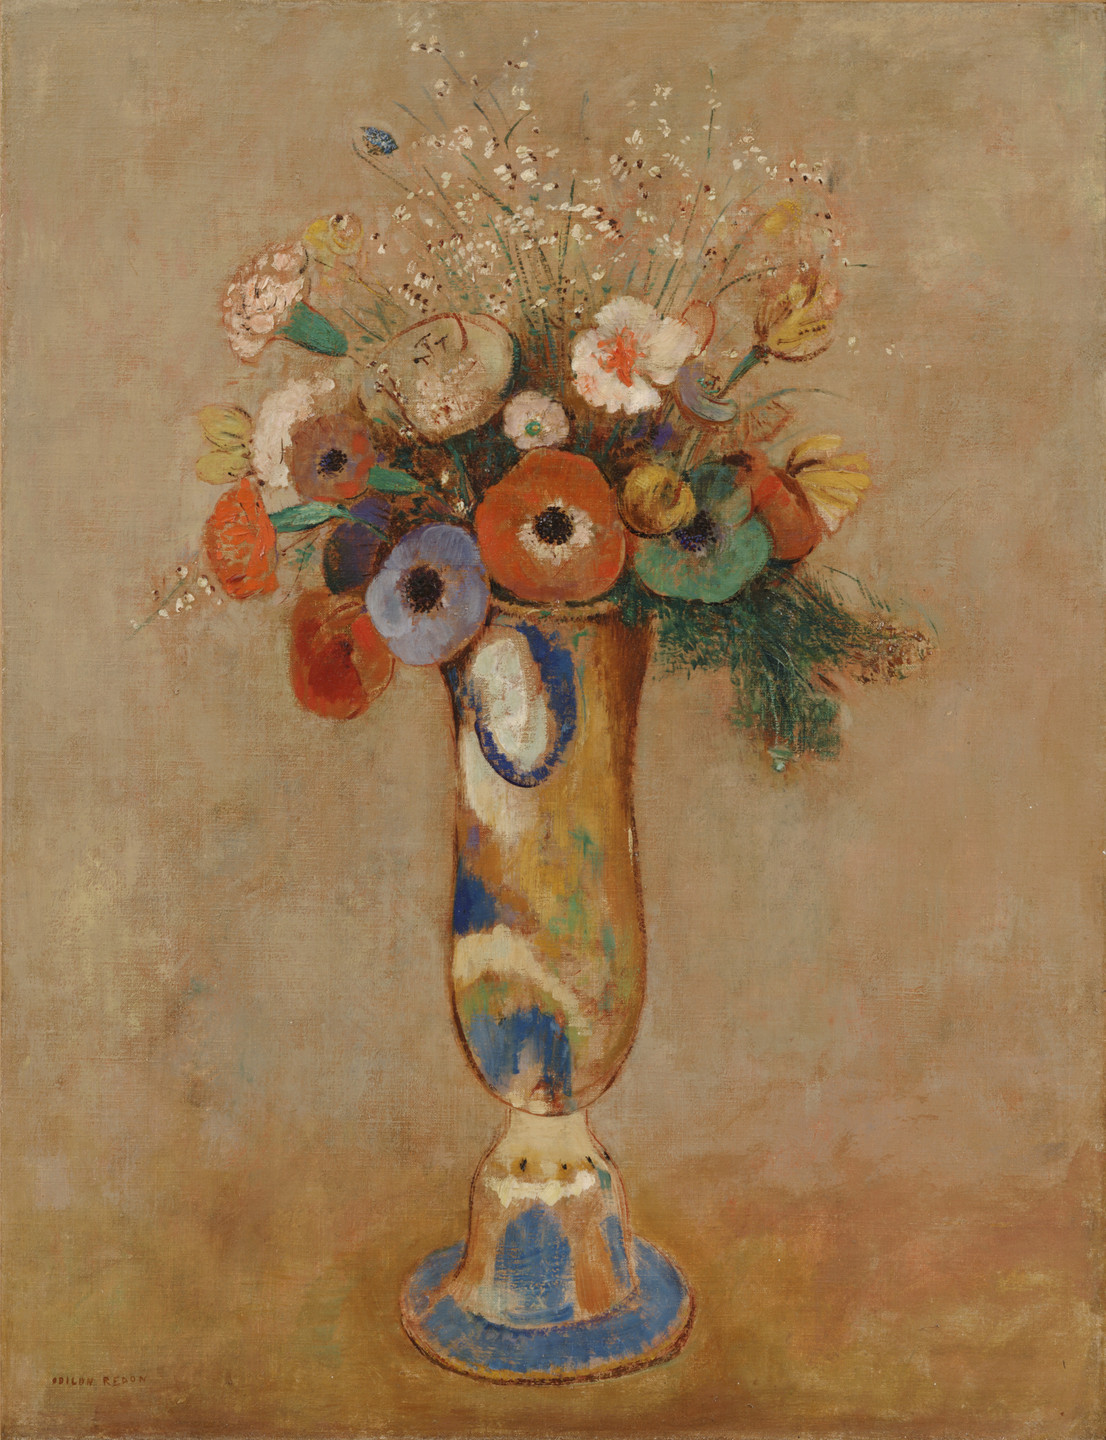 Odilon Redon. Wildflowers in a Long Neck Vase. c. 1912